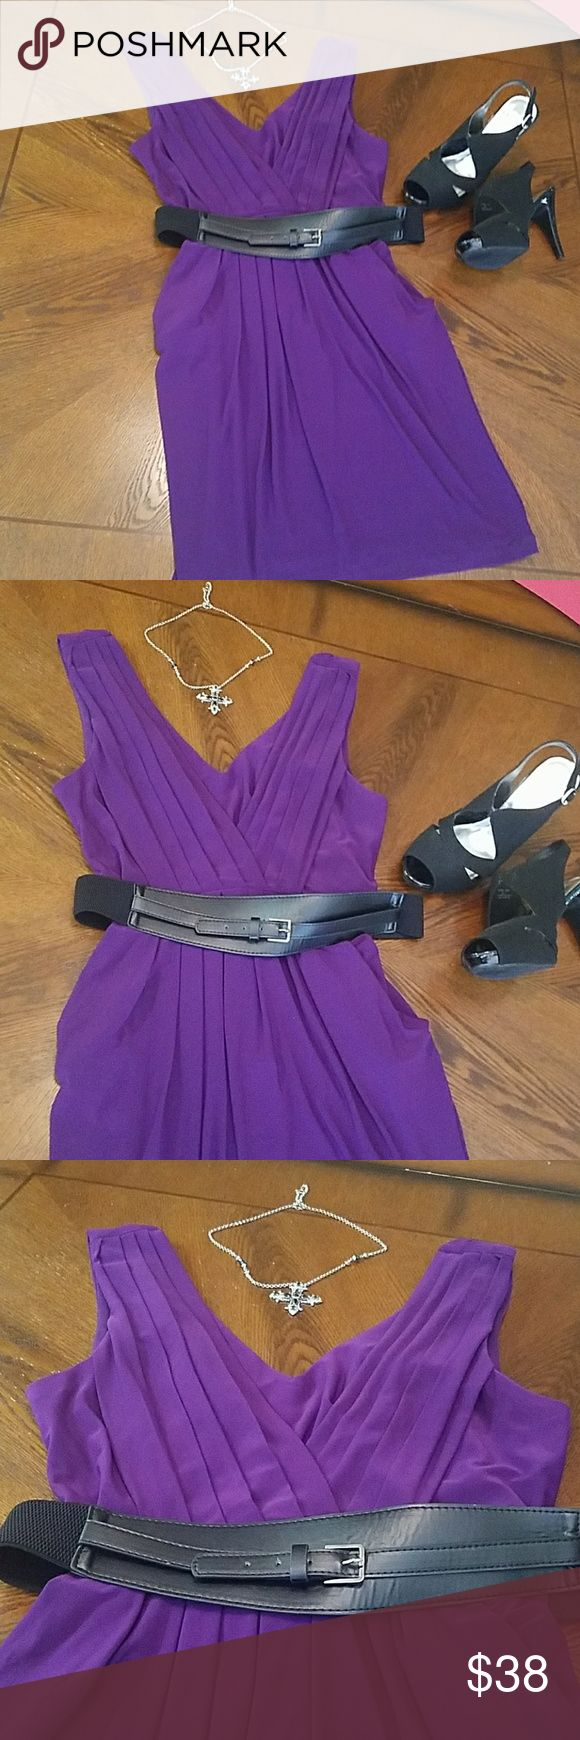 Purple dress B. Smart dress adorable worn once  purple dress plus size 16 Black belt detachable B. Smart Dresses